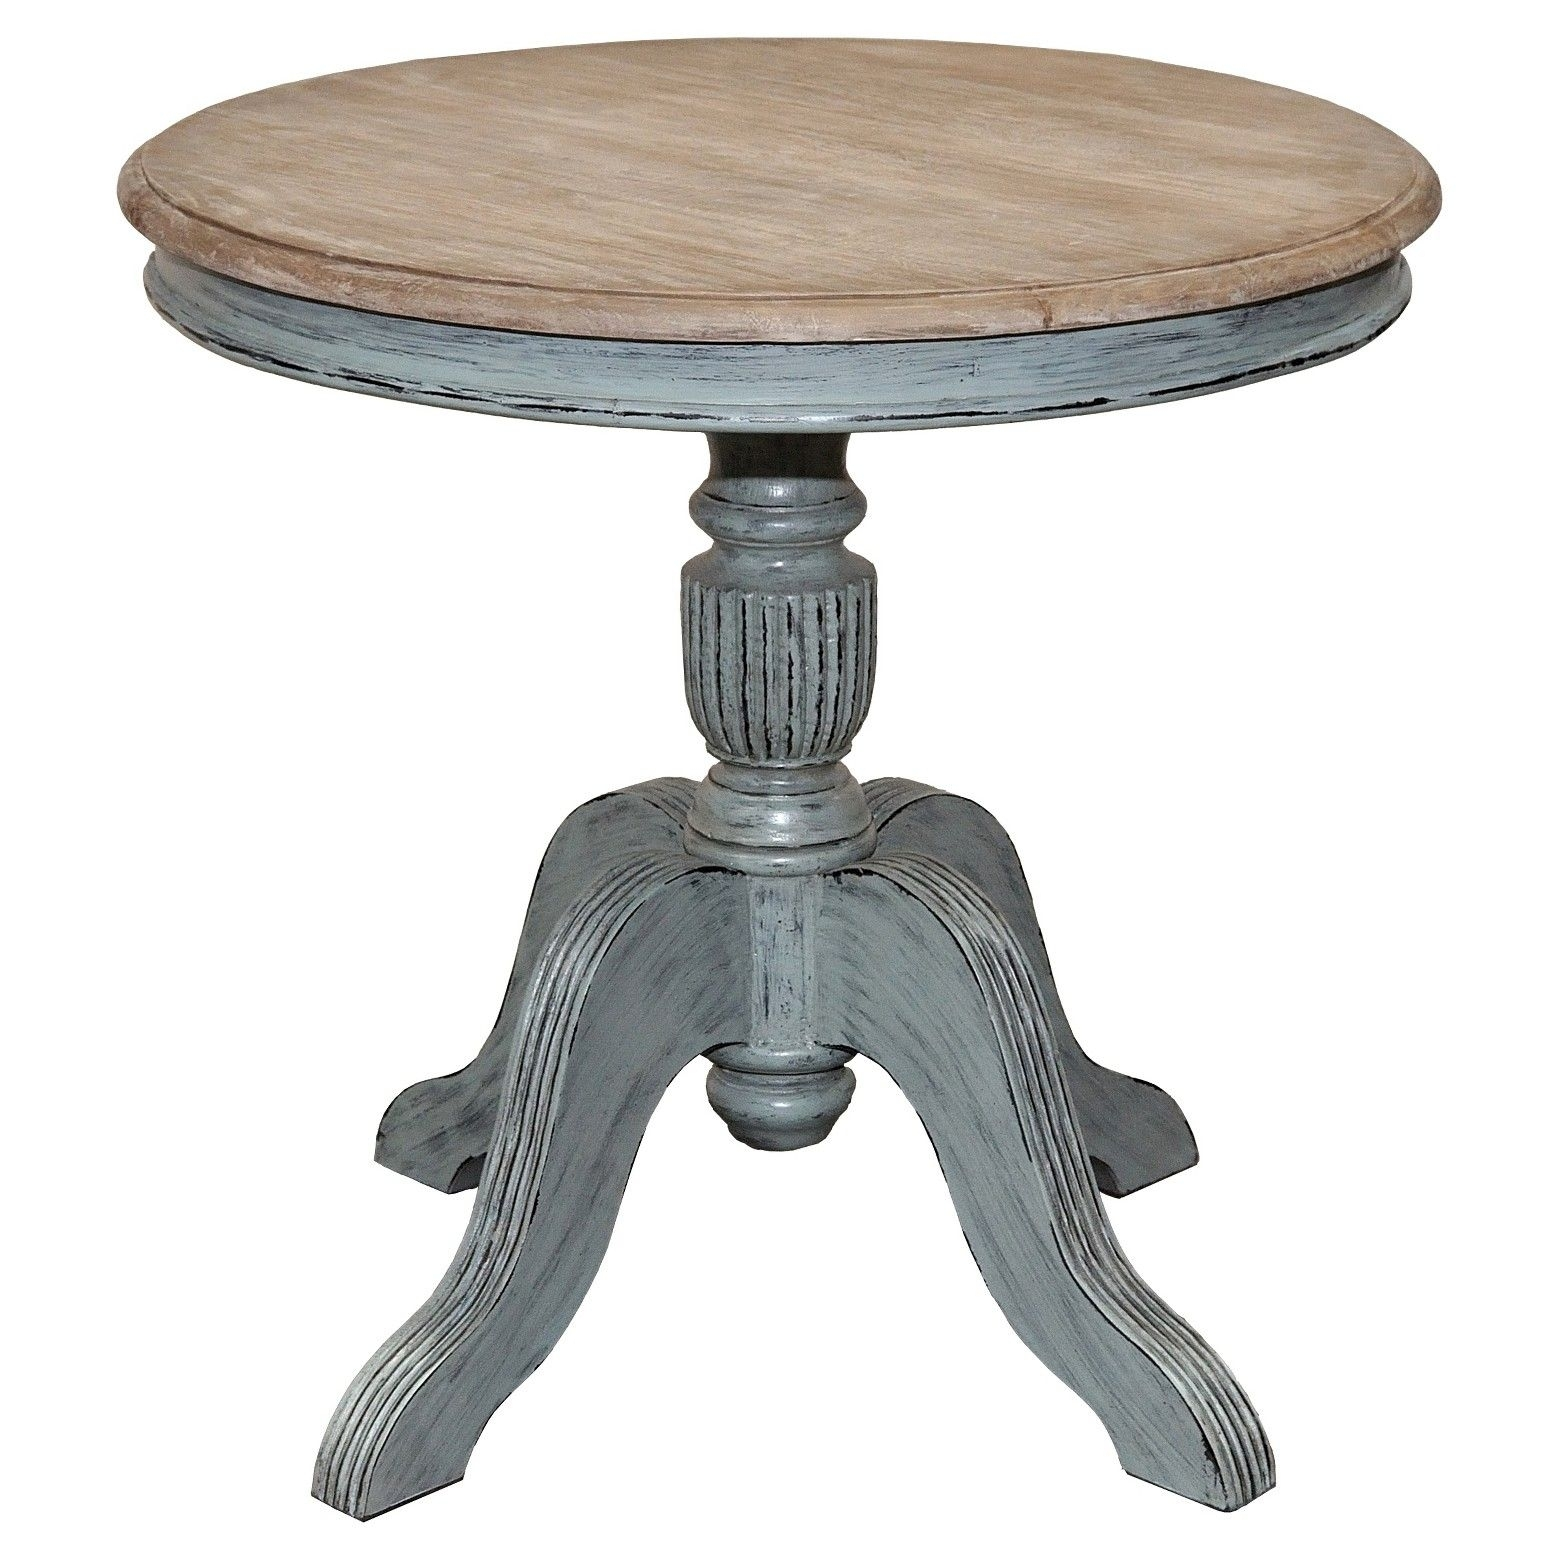 Venezia Round 31 Dining Table Farmhouse Island Blue Base With Rustic Within Most Up To Date Grady Round Dining Tables (View 5 of 20)